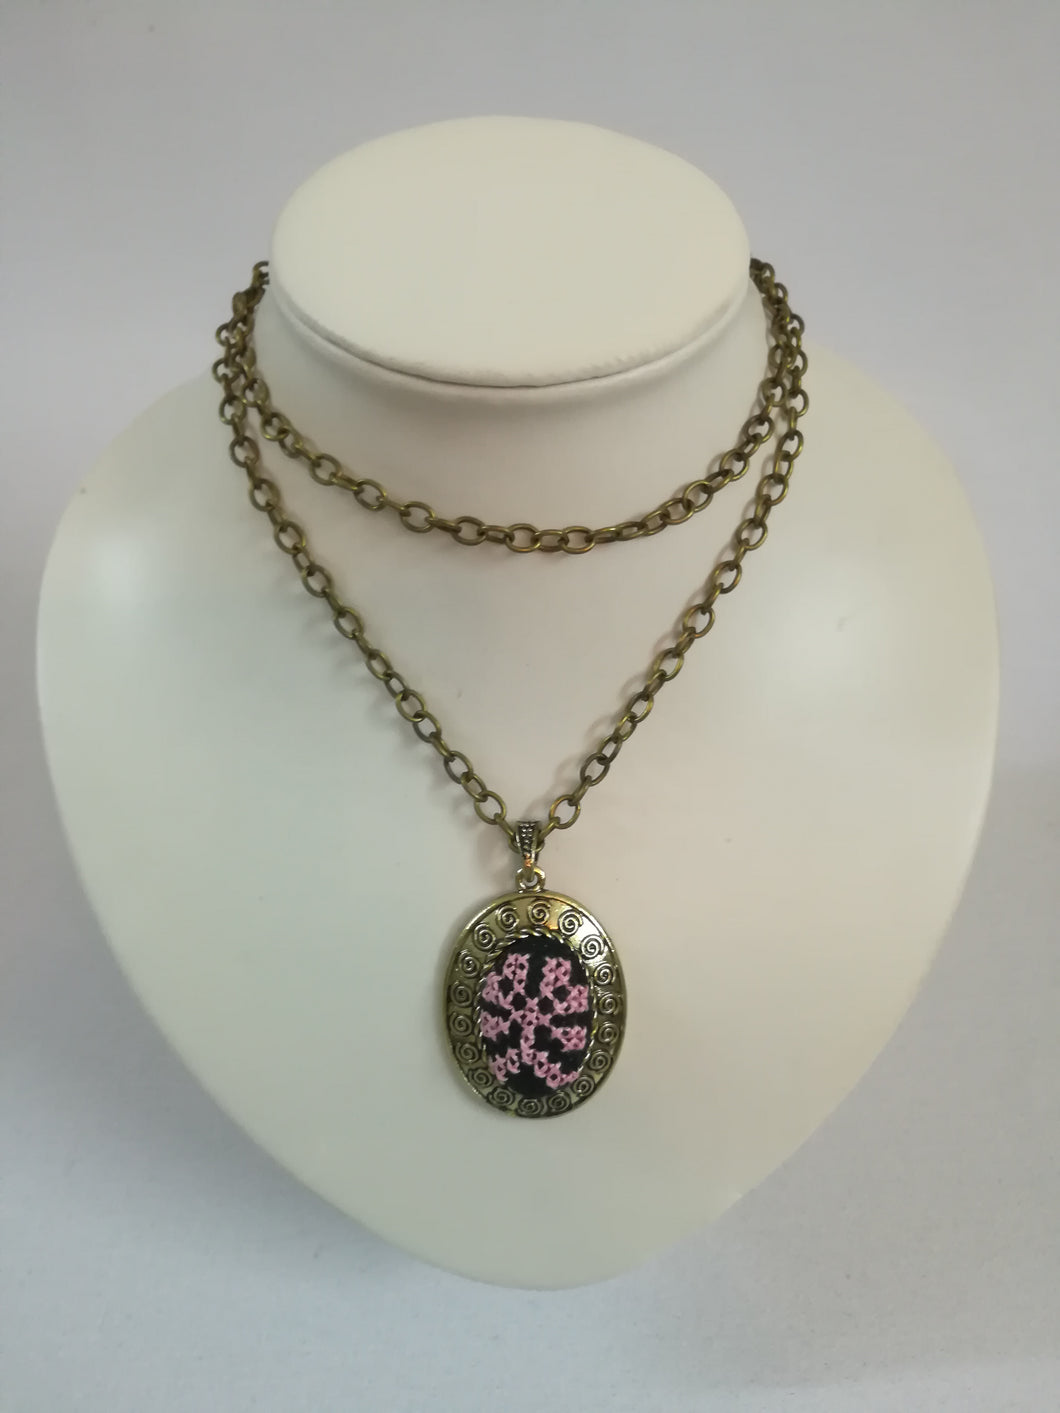 Golden color necklace with pink embroidery - Falastini Brand